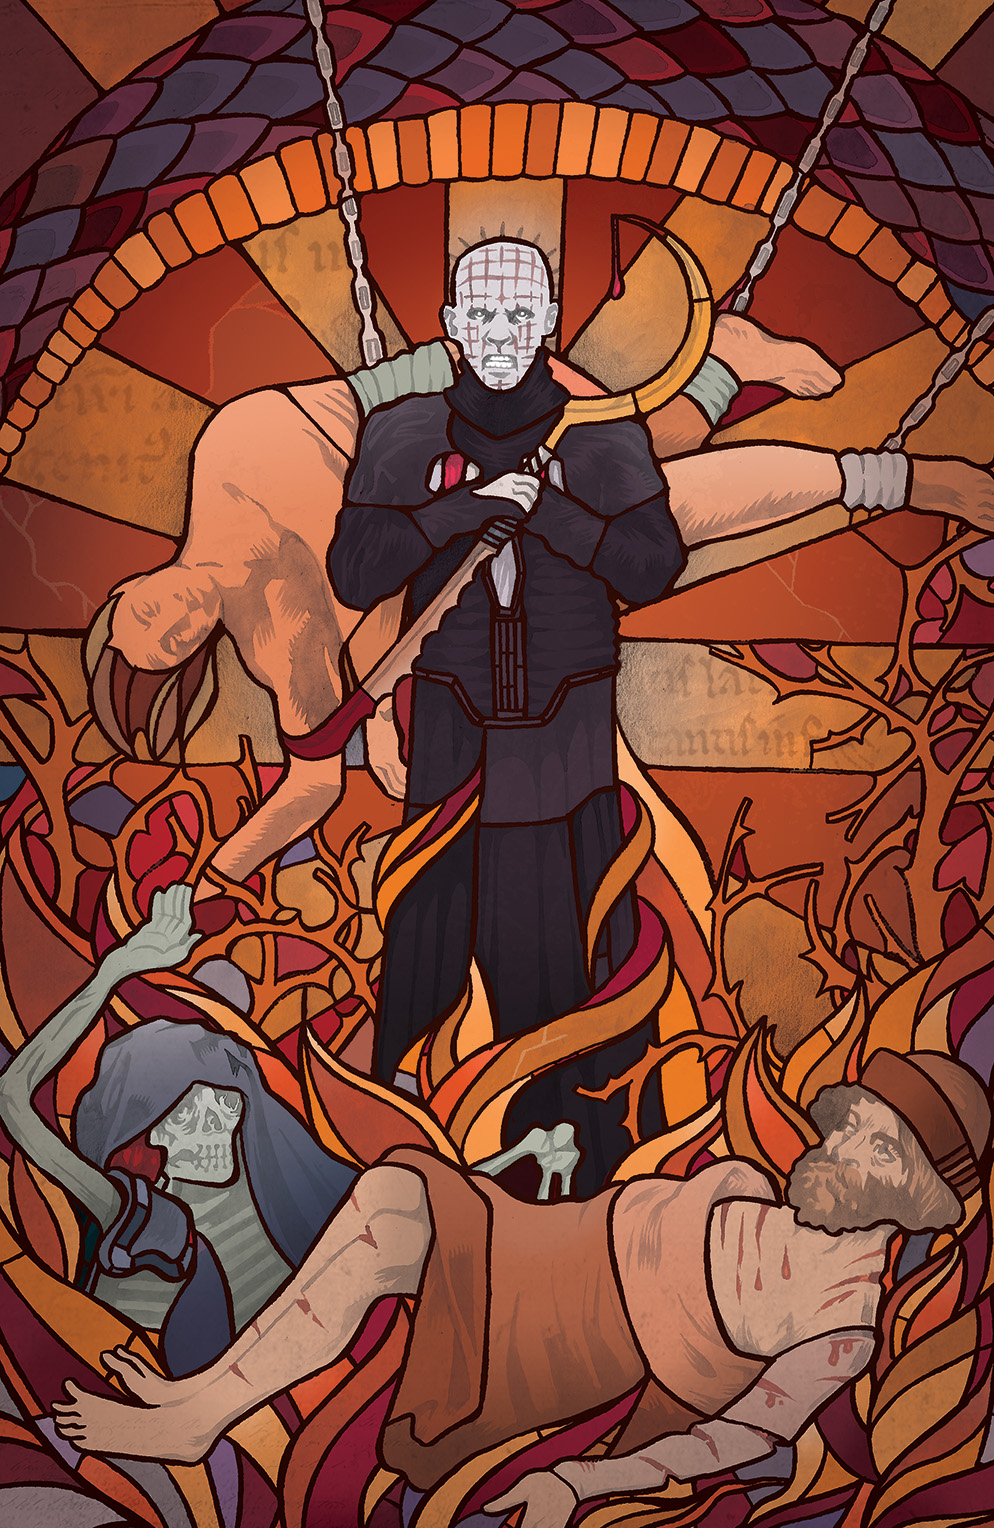 CLIVE BARKER'S HELLRAISER: BESTIARY #6 (of 6)